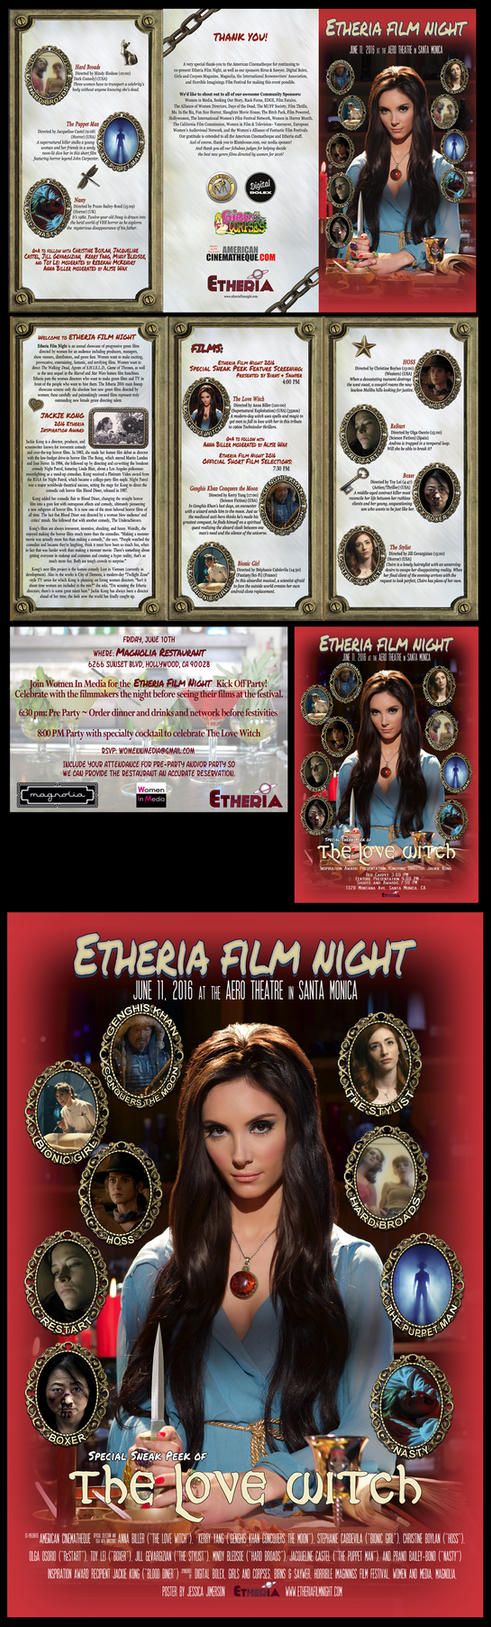 Etheria Film Night program/poster/flyer/etc 2016 by JessHavok